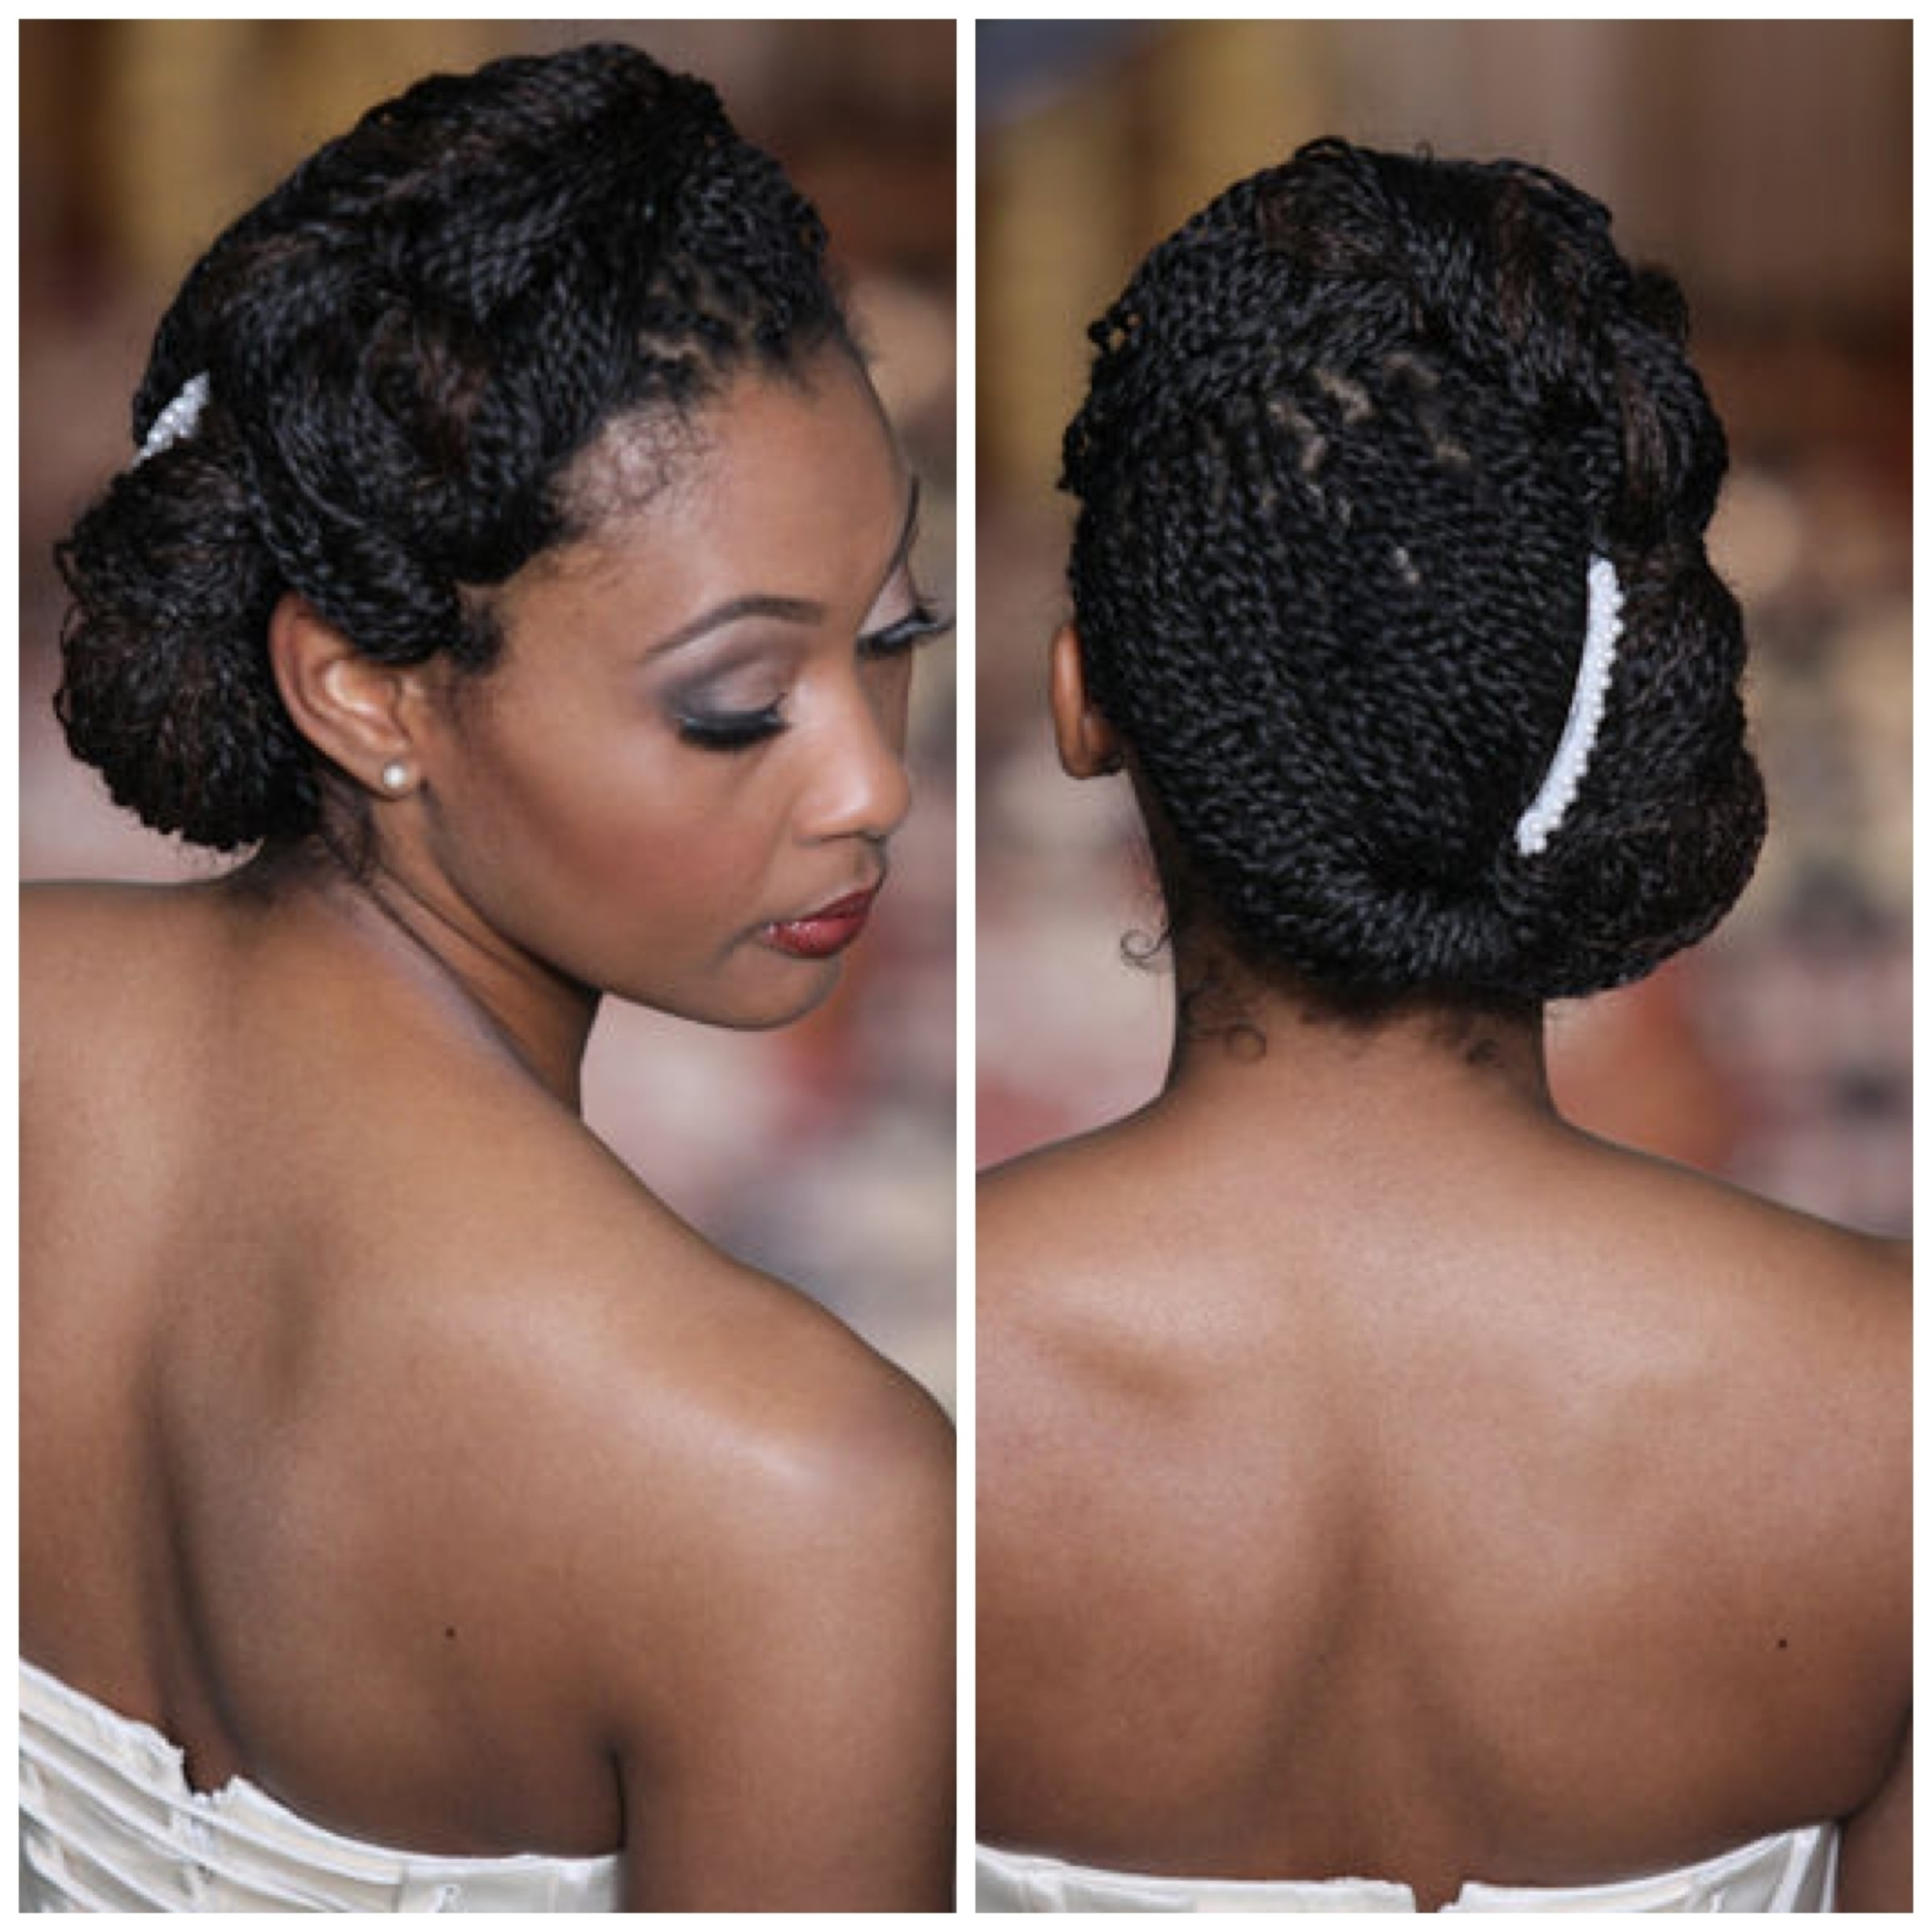 Loc Updo Hairstyles Ideas Of Bridal Hairstyles For Dreadlocks In Loc Updo Hairstyles (View 12 of 15)